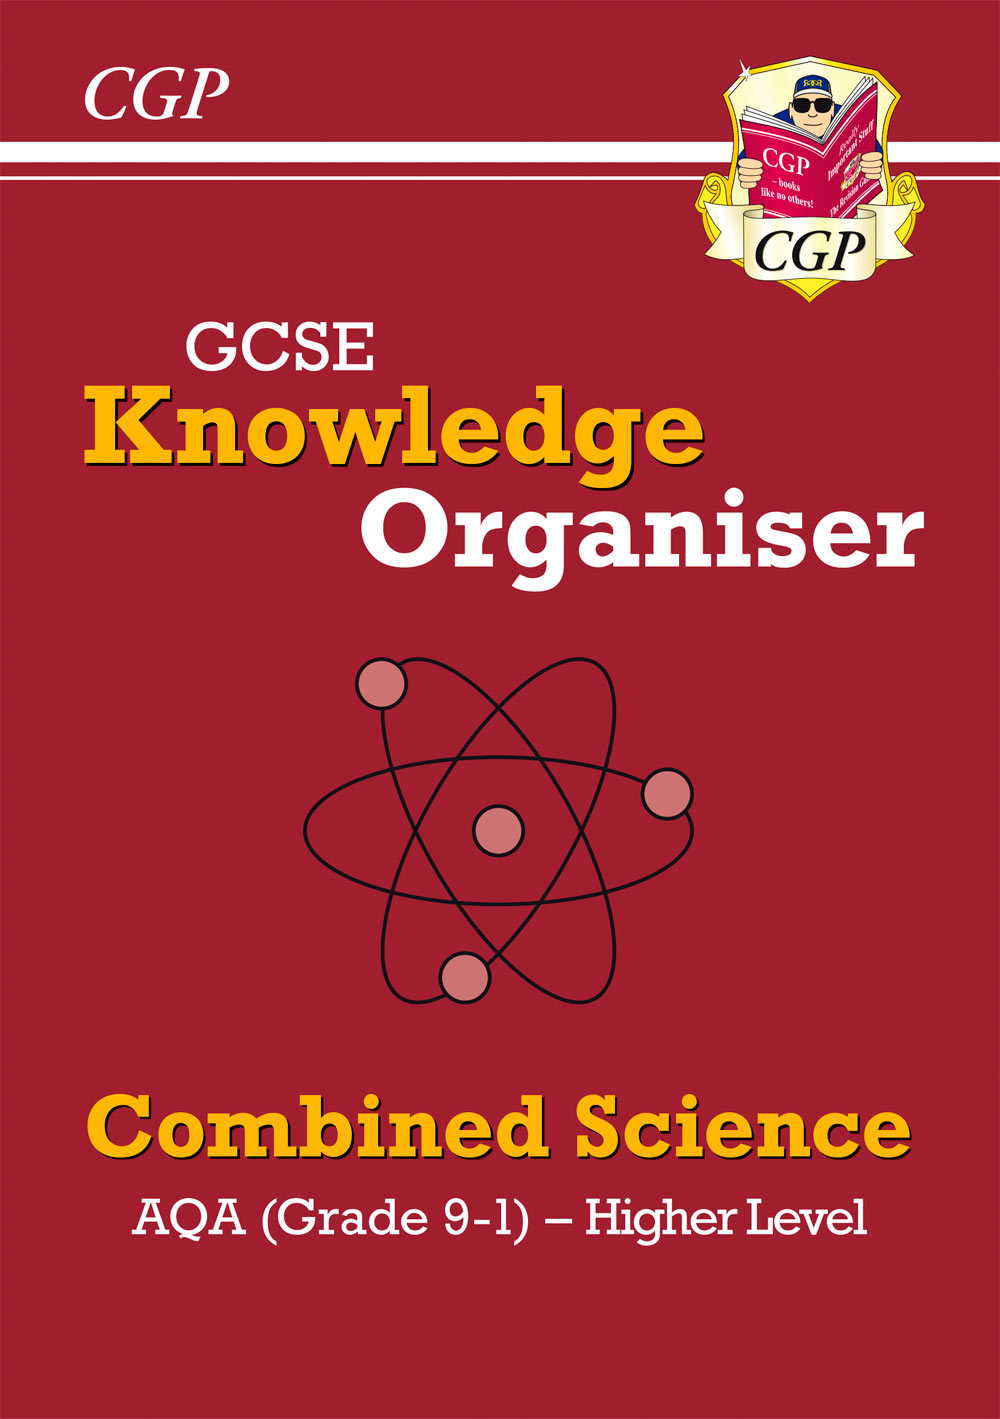 SCAHNO41 - New GCSE Knowledge Organiser: AQA Combined Science - Higher (Grade 9-1)